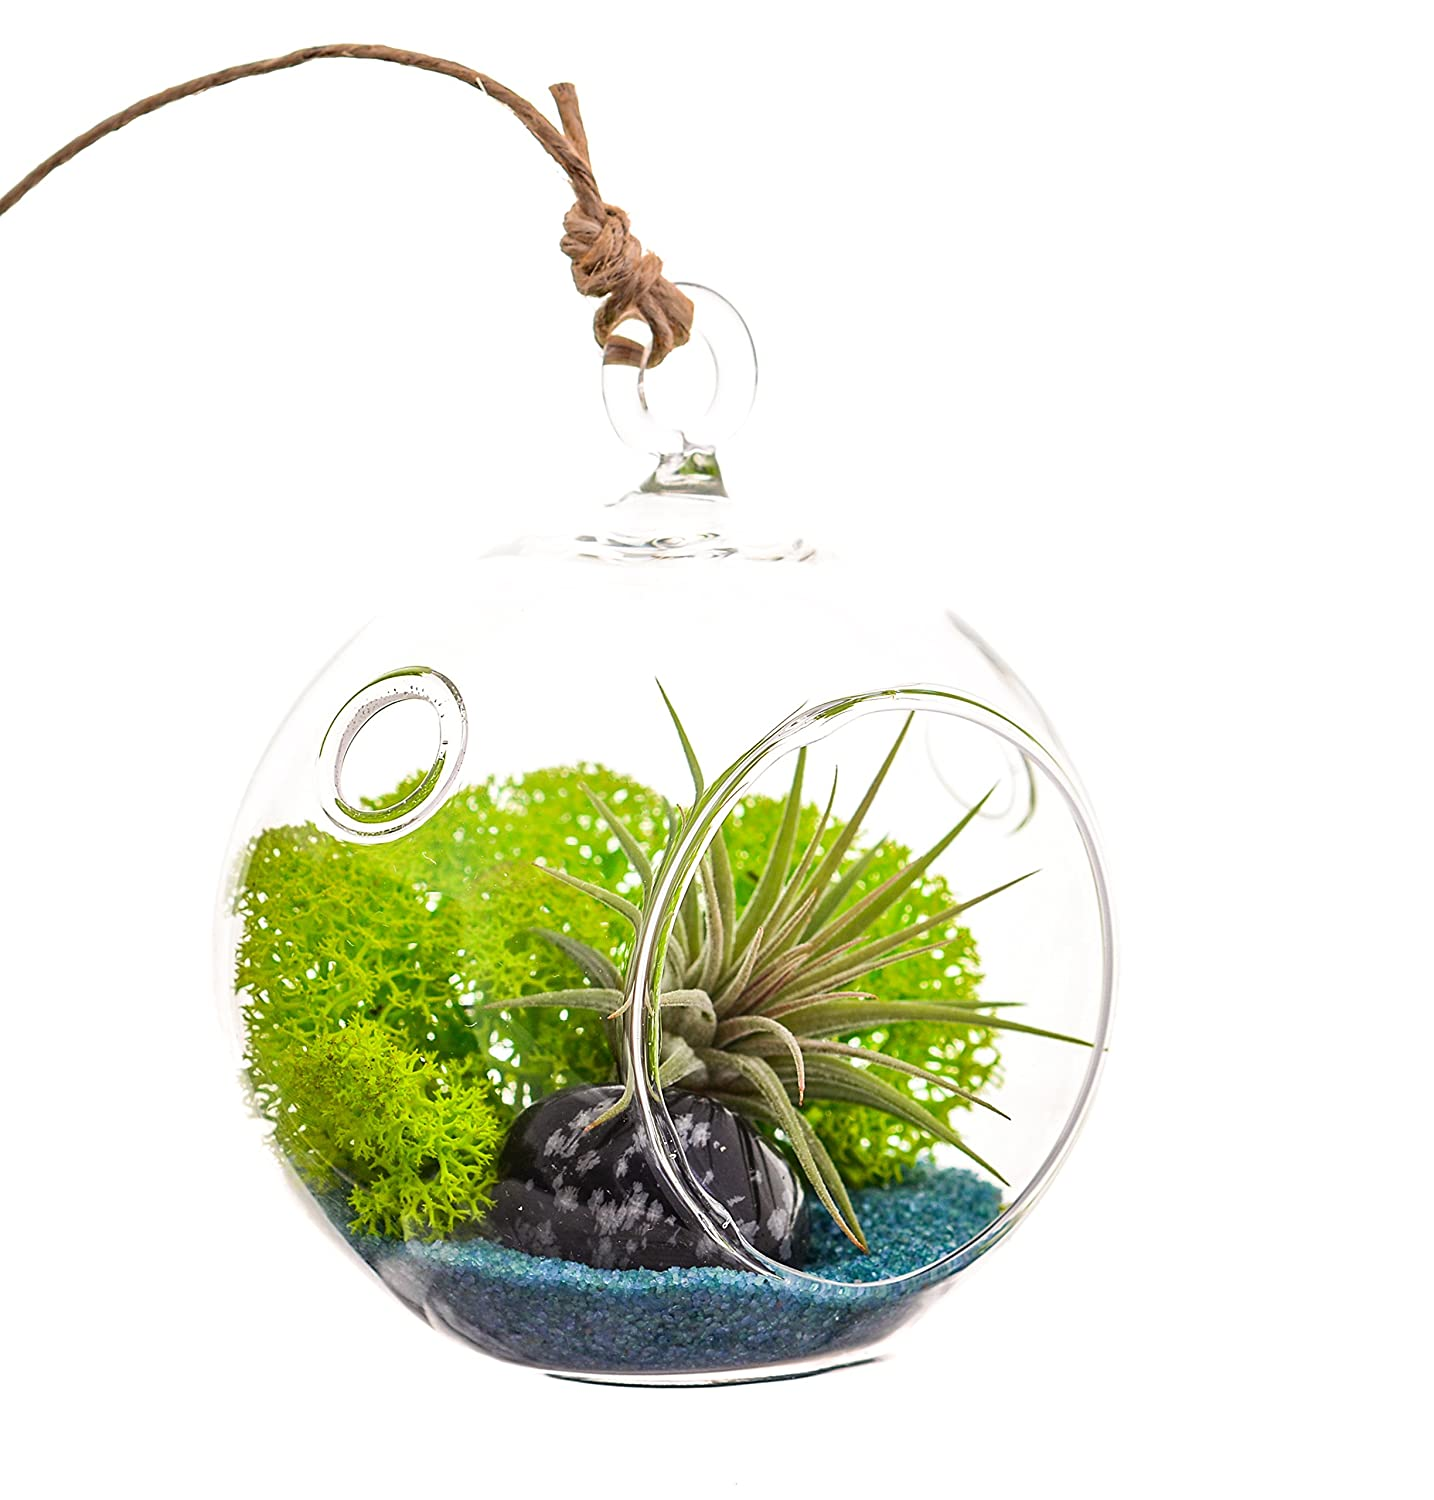 Bliss Gardens Mini Air Plant Terrarium Kit with 3 Glass Turquoise Sand, Green Moss and Snowflake Obsedian Stone